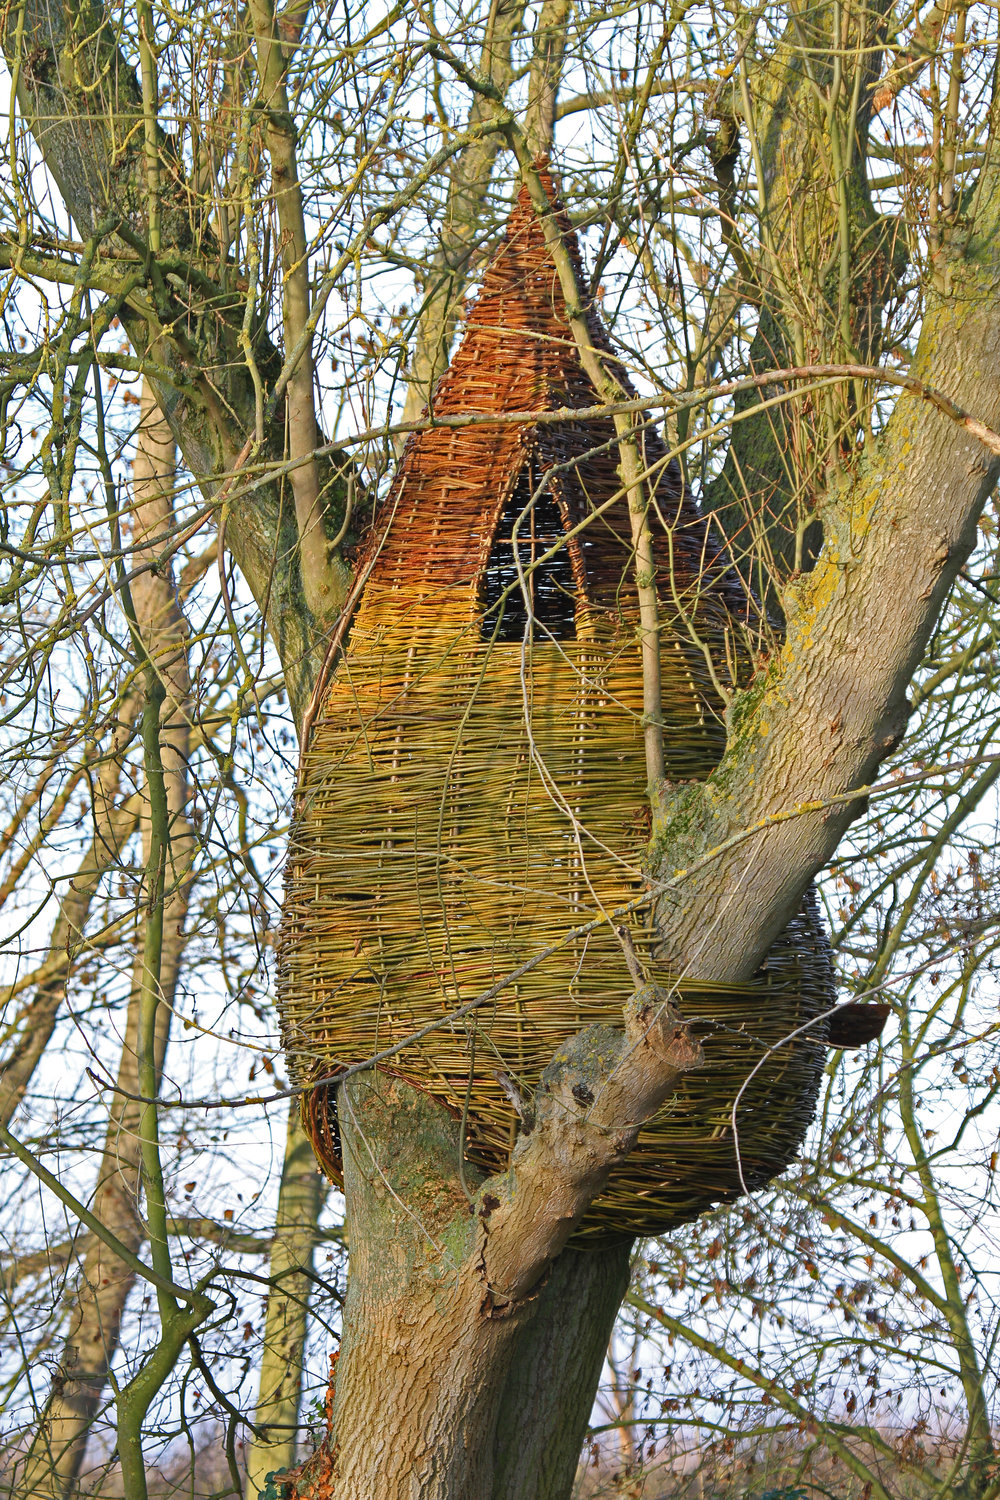 Bespoke tree houses and dens by WonderWood